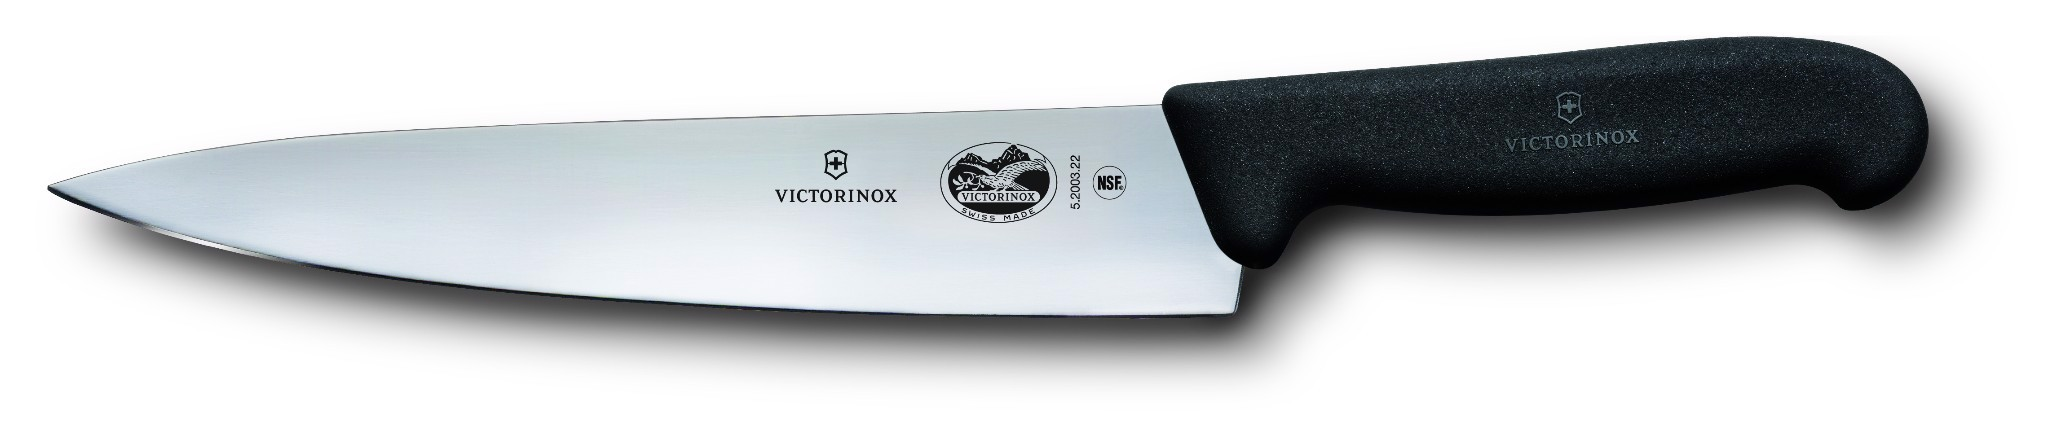 Dao bếp Victorinox Carving Knives (22cm, fibrox handle)